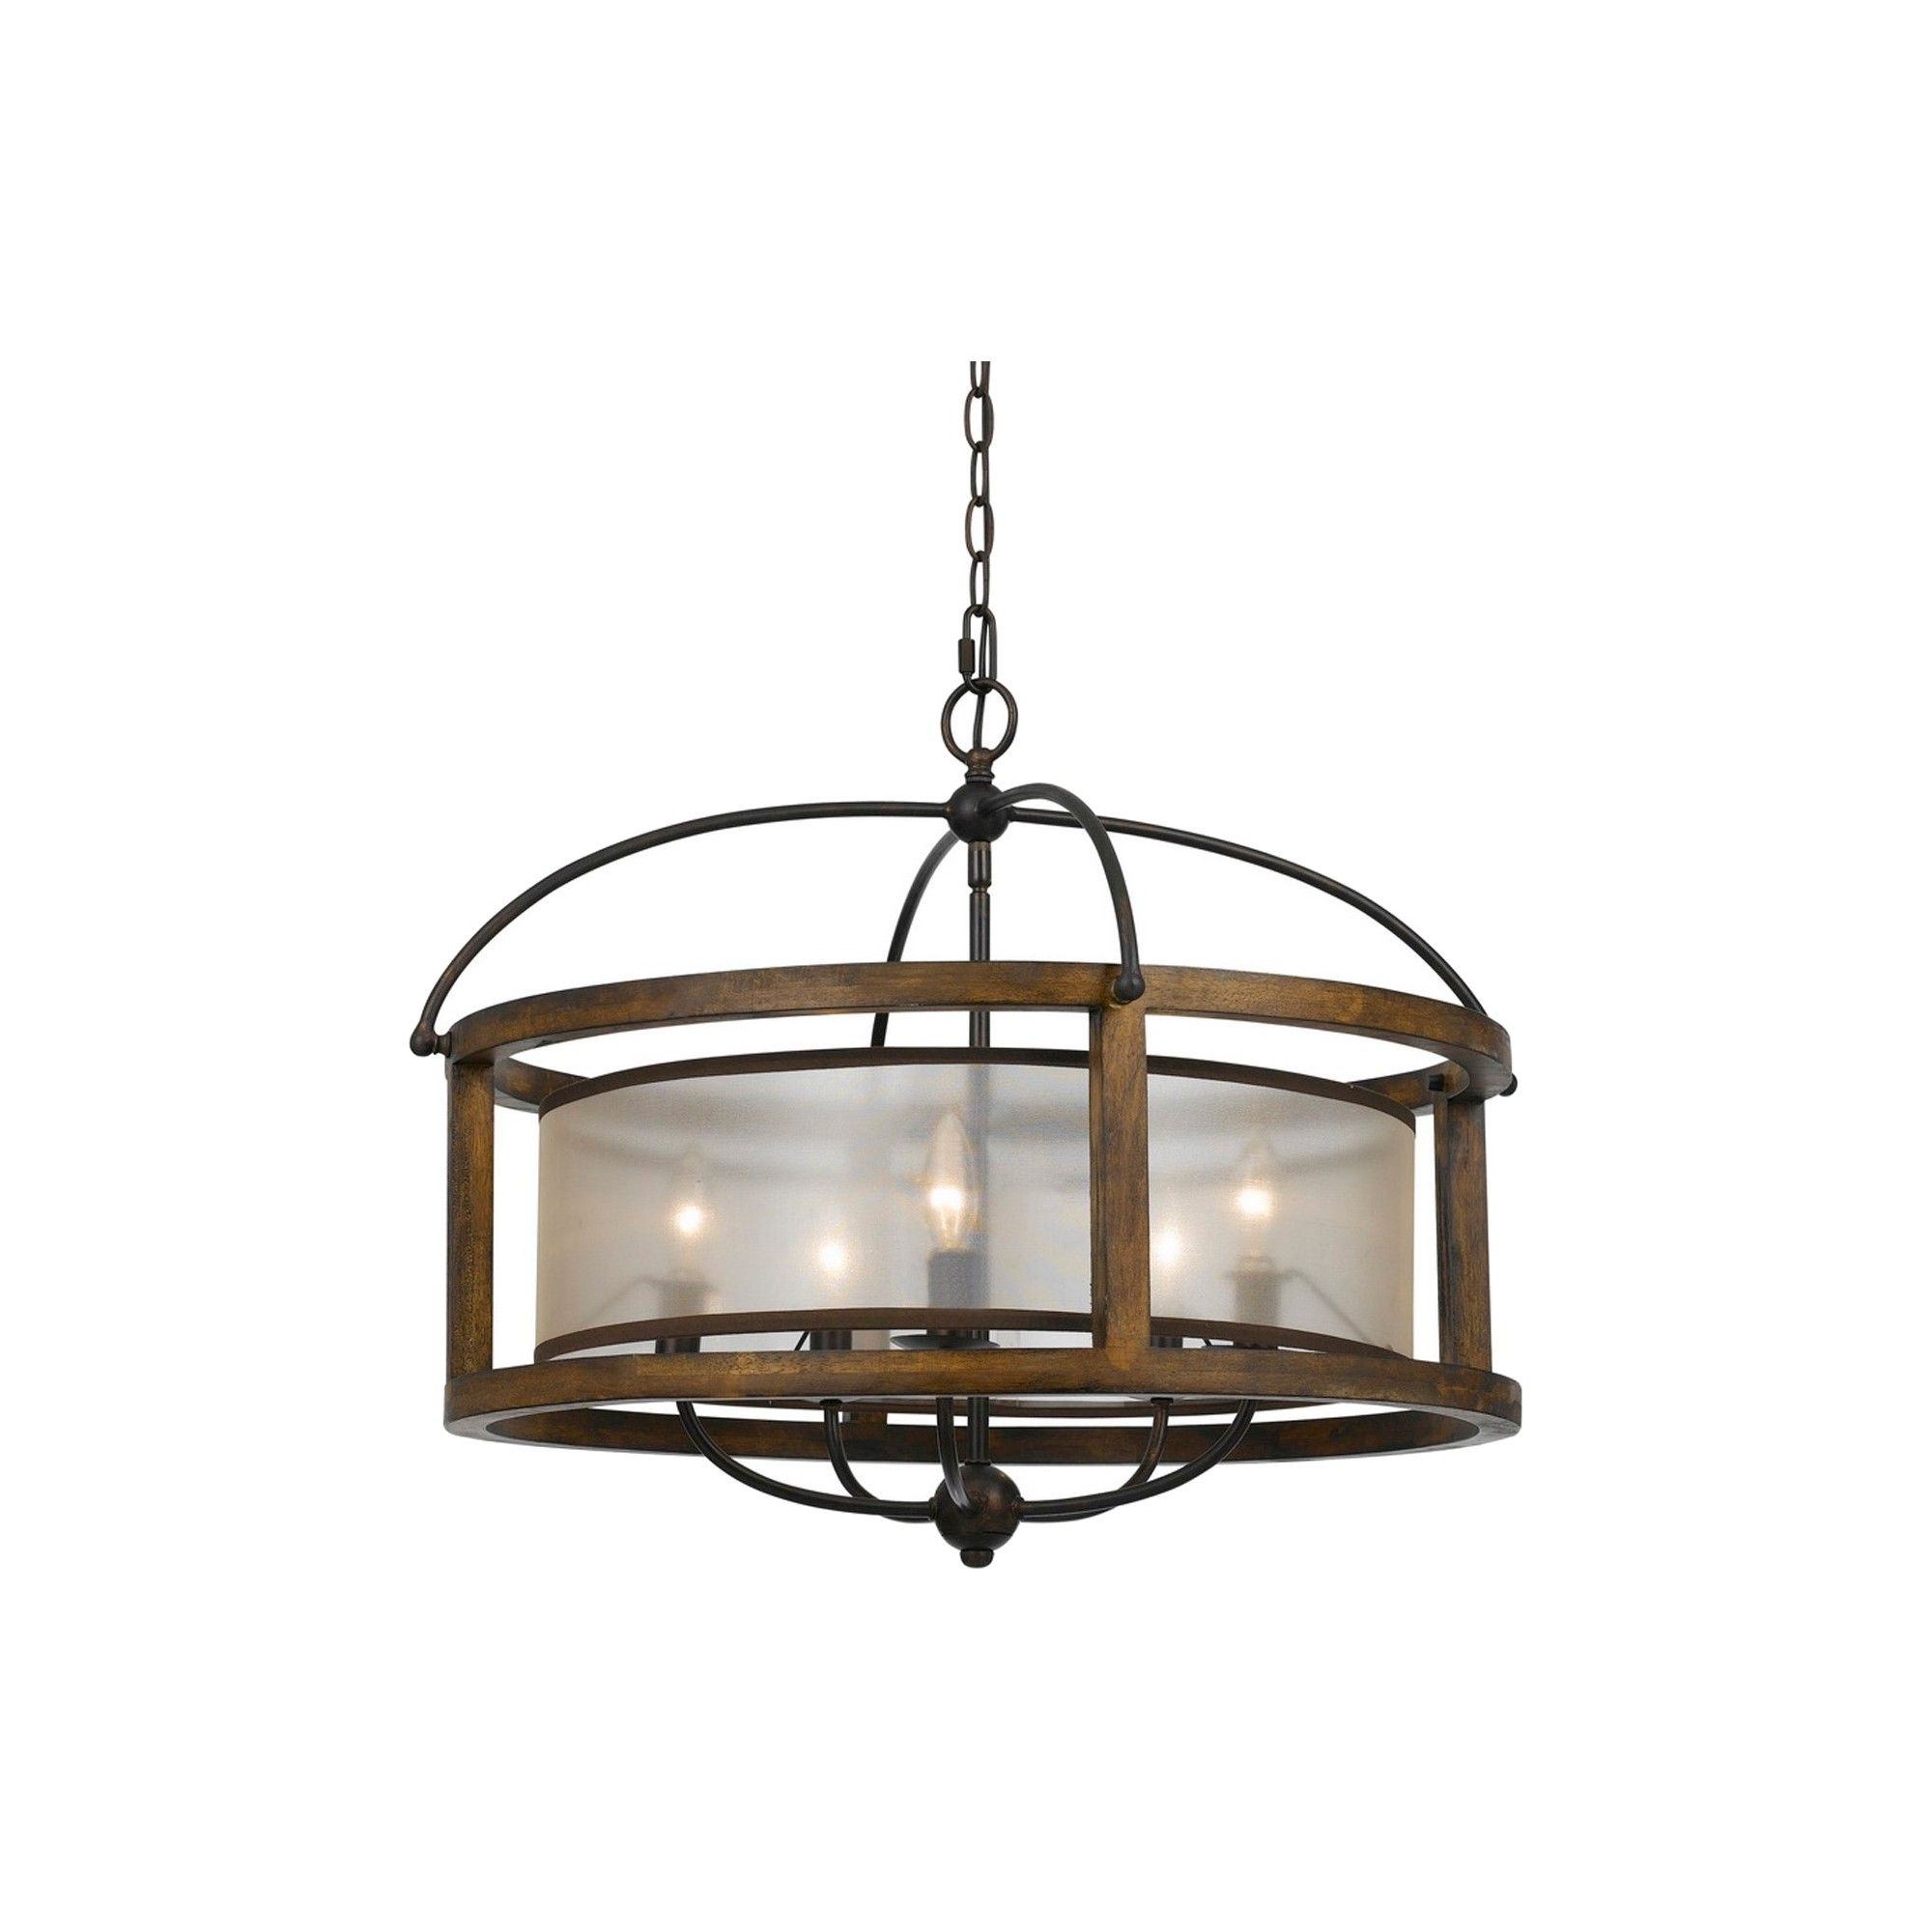 lamp gold b ceiling priory q prd at pendant departments light diy bq